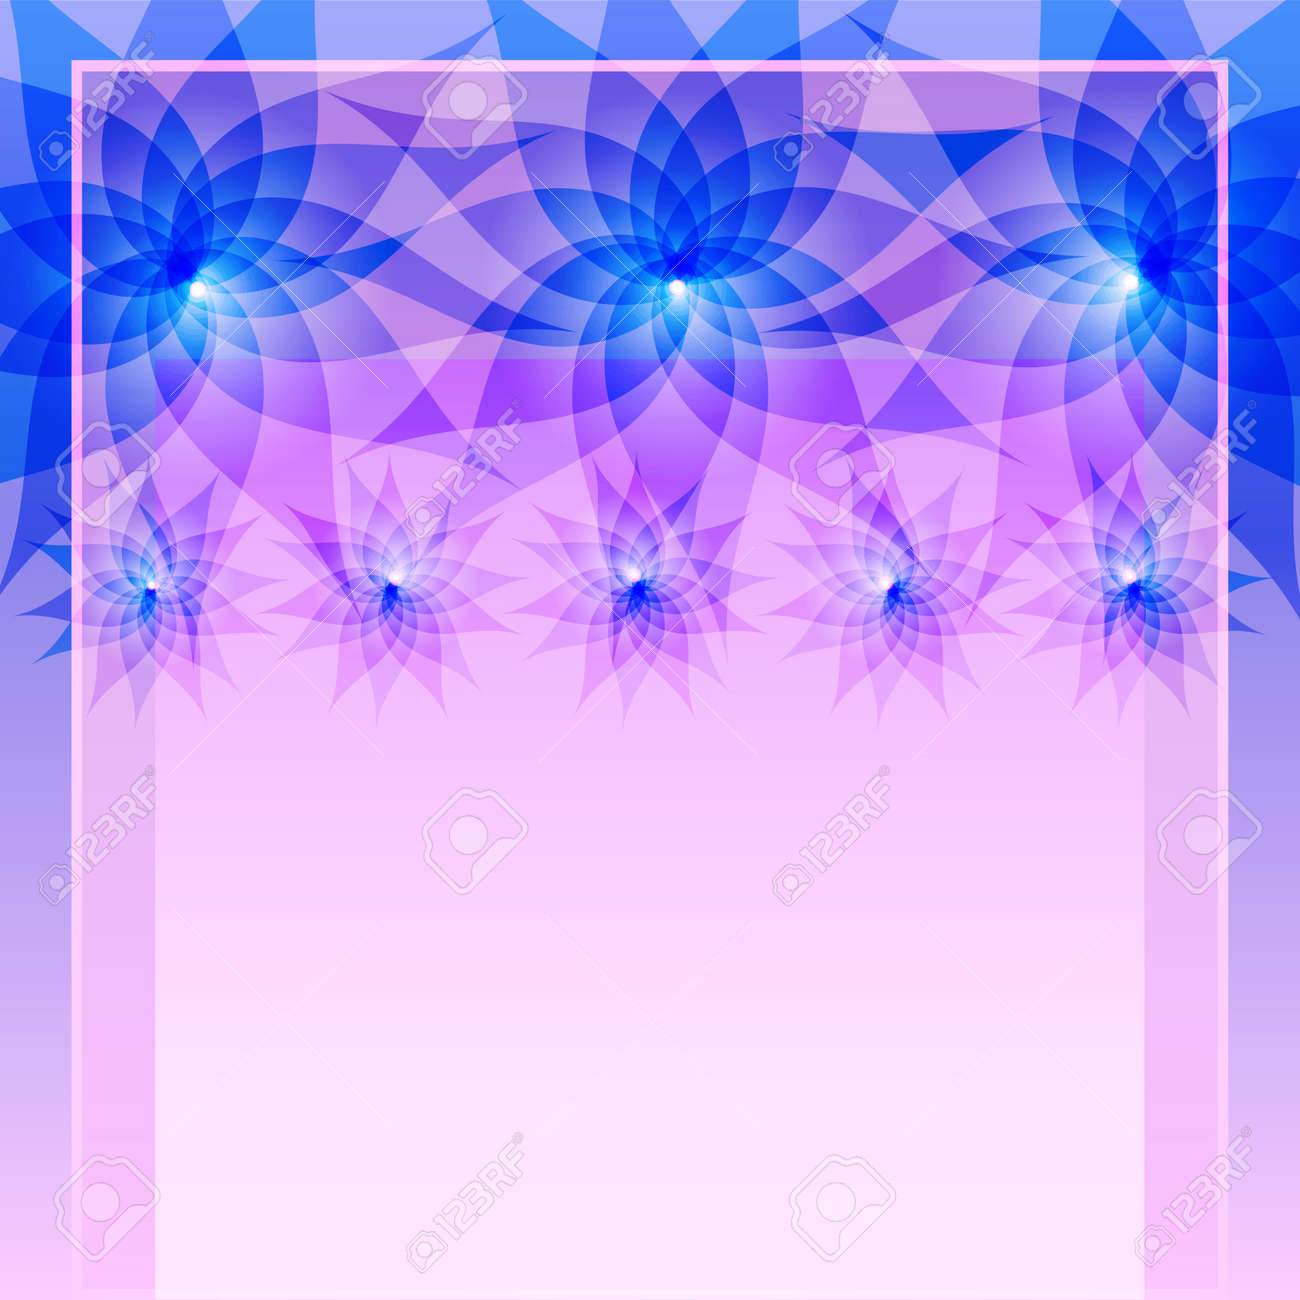 Abstract Floral Blue Purple Background With Flowers Lilies